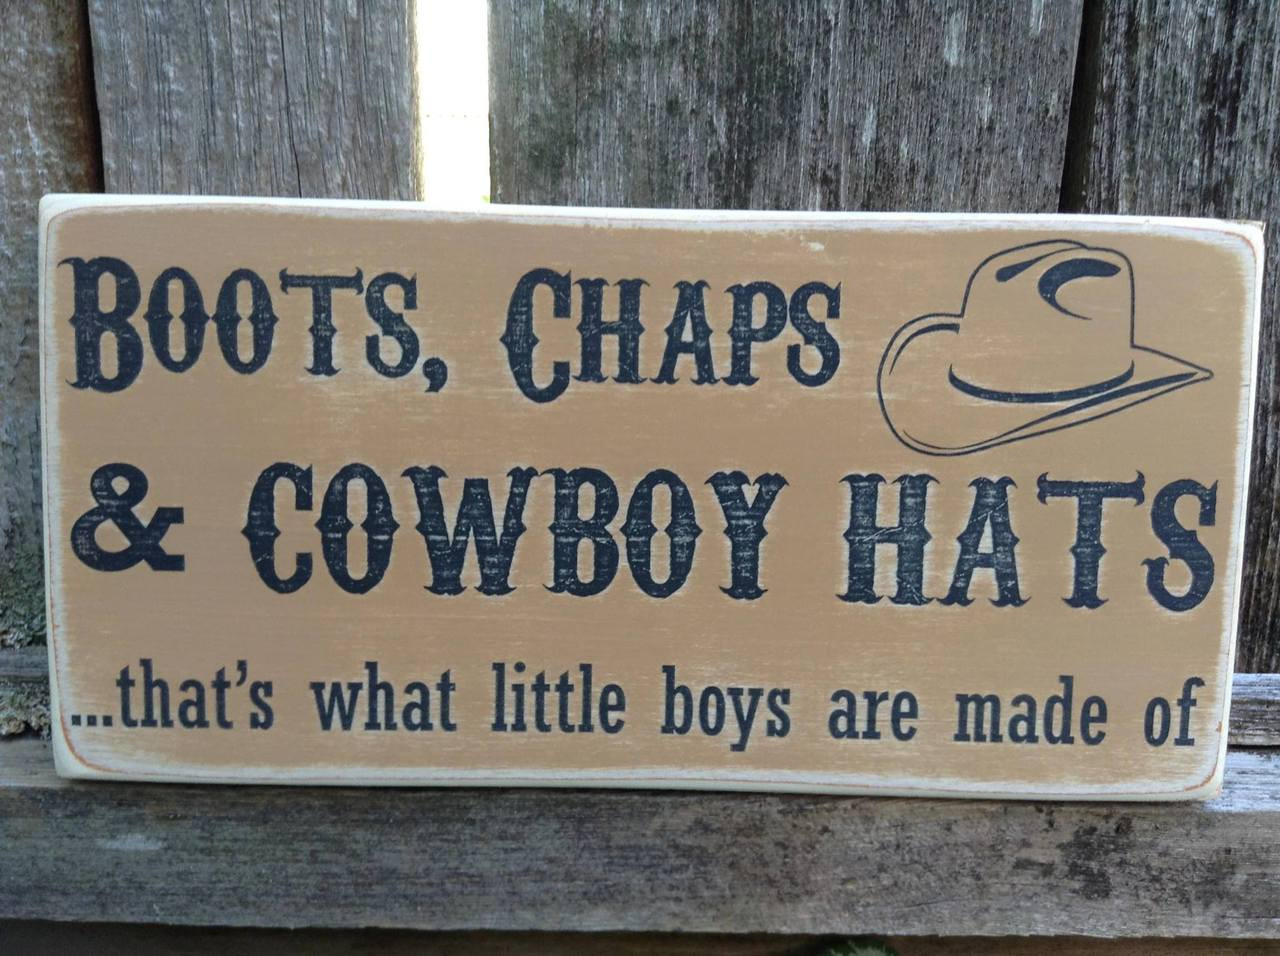 Boots Chaps and Cowboy Hats that's what little boys are made of - wood sign